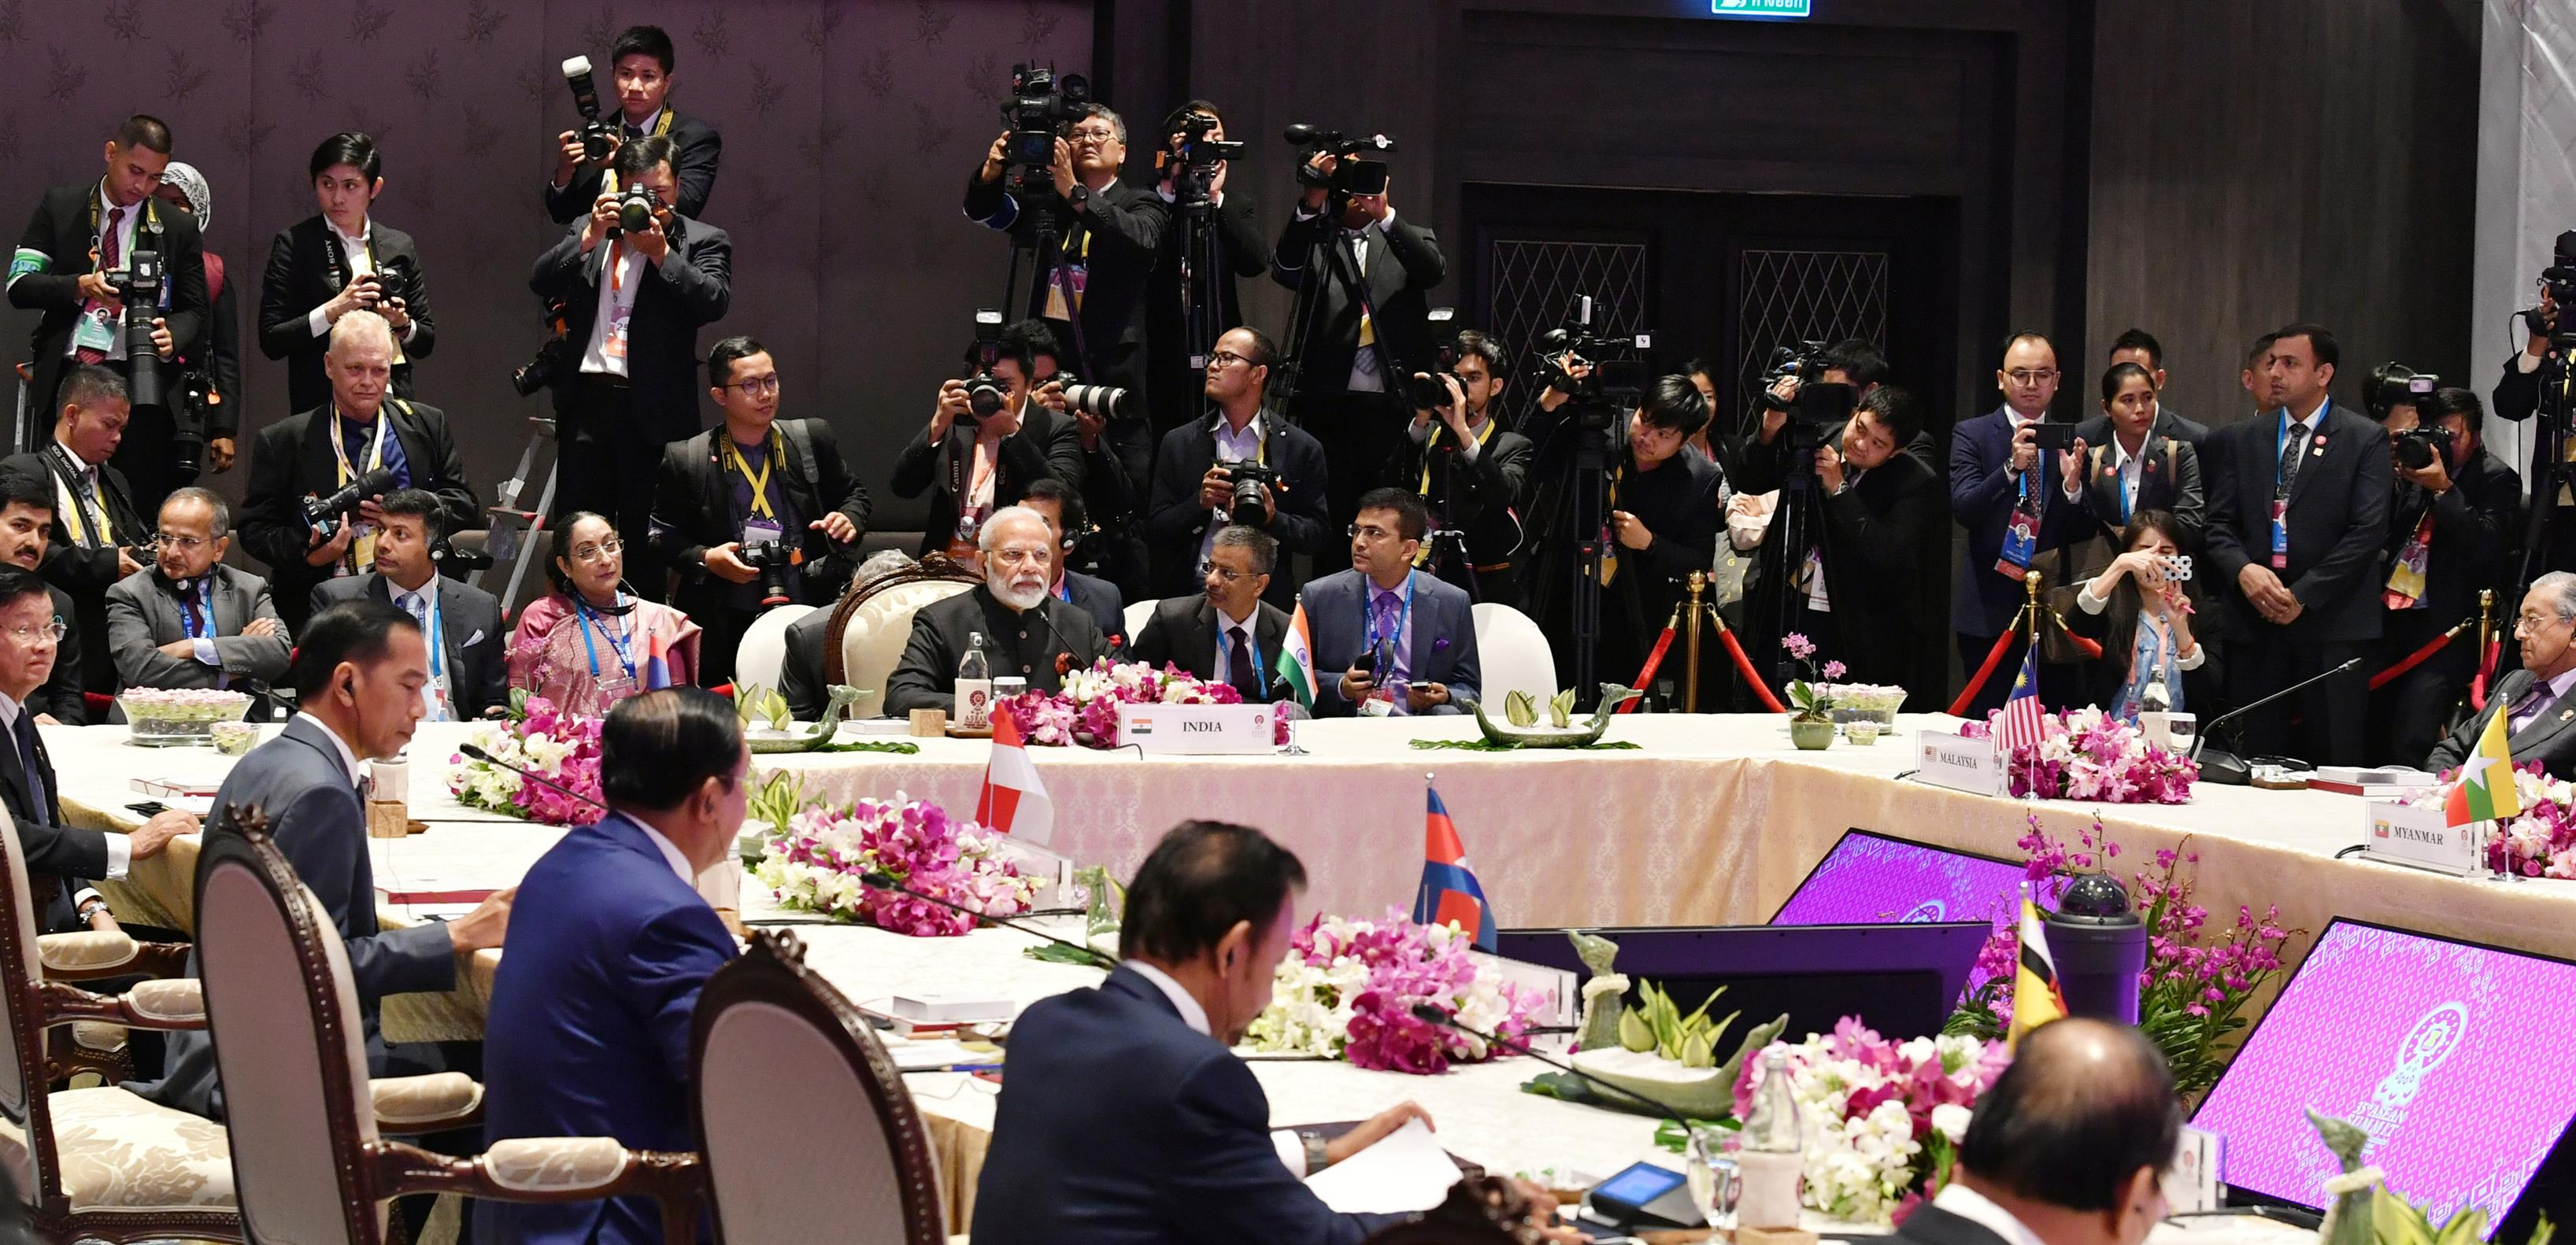 The Prime Minister, Shri Narendra Modi addressing the 16th ASEAN-India Summit